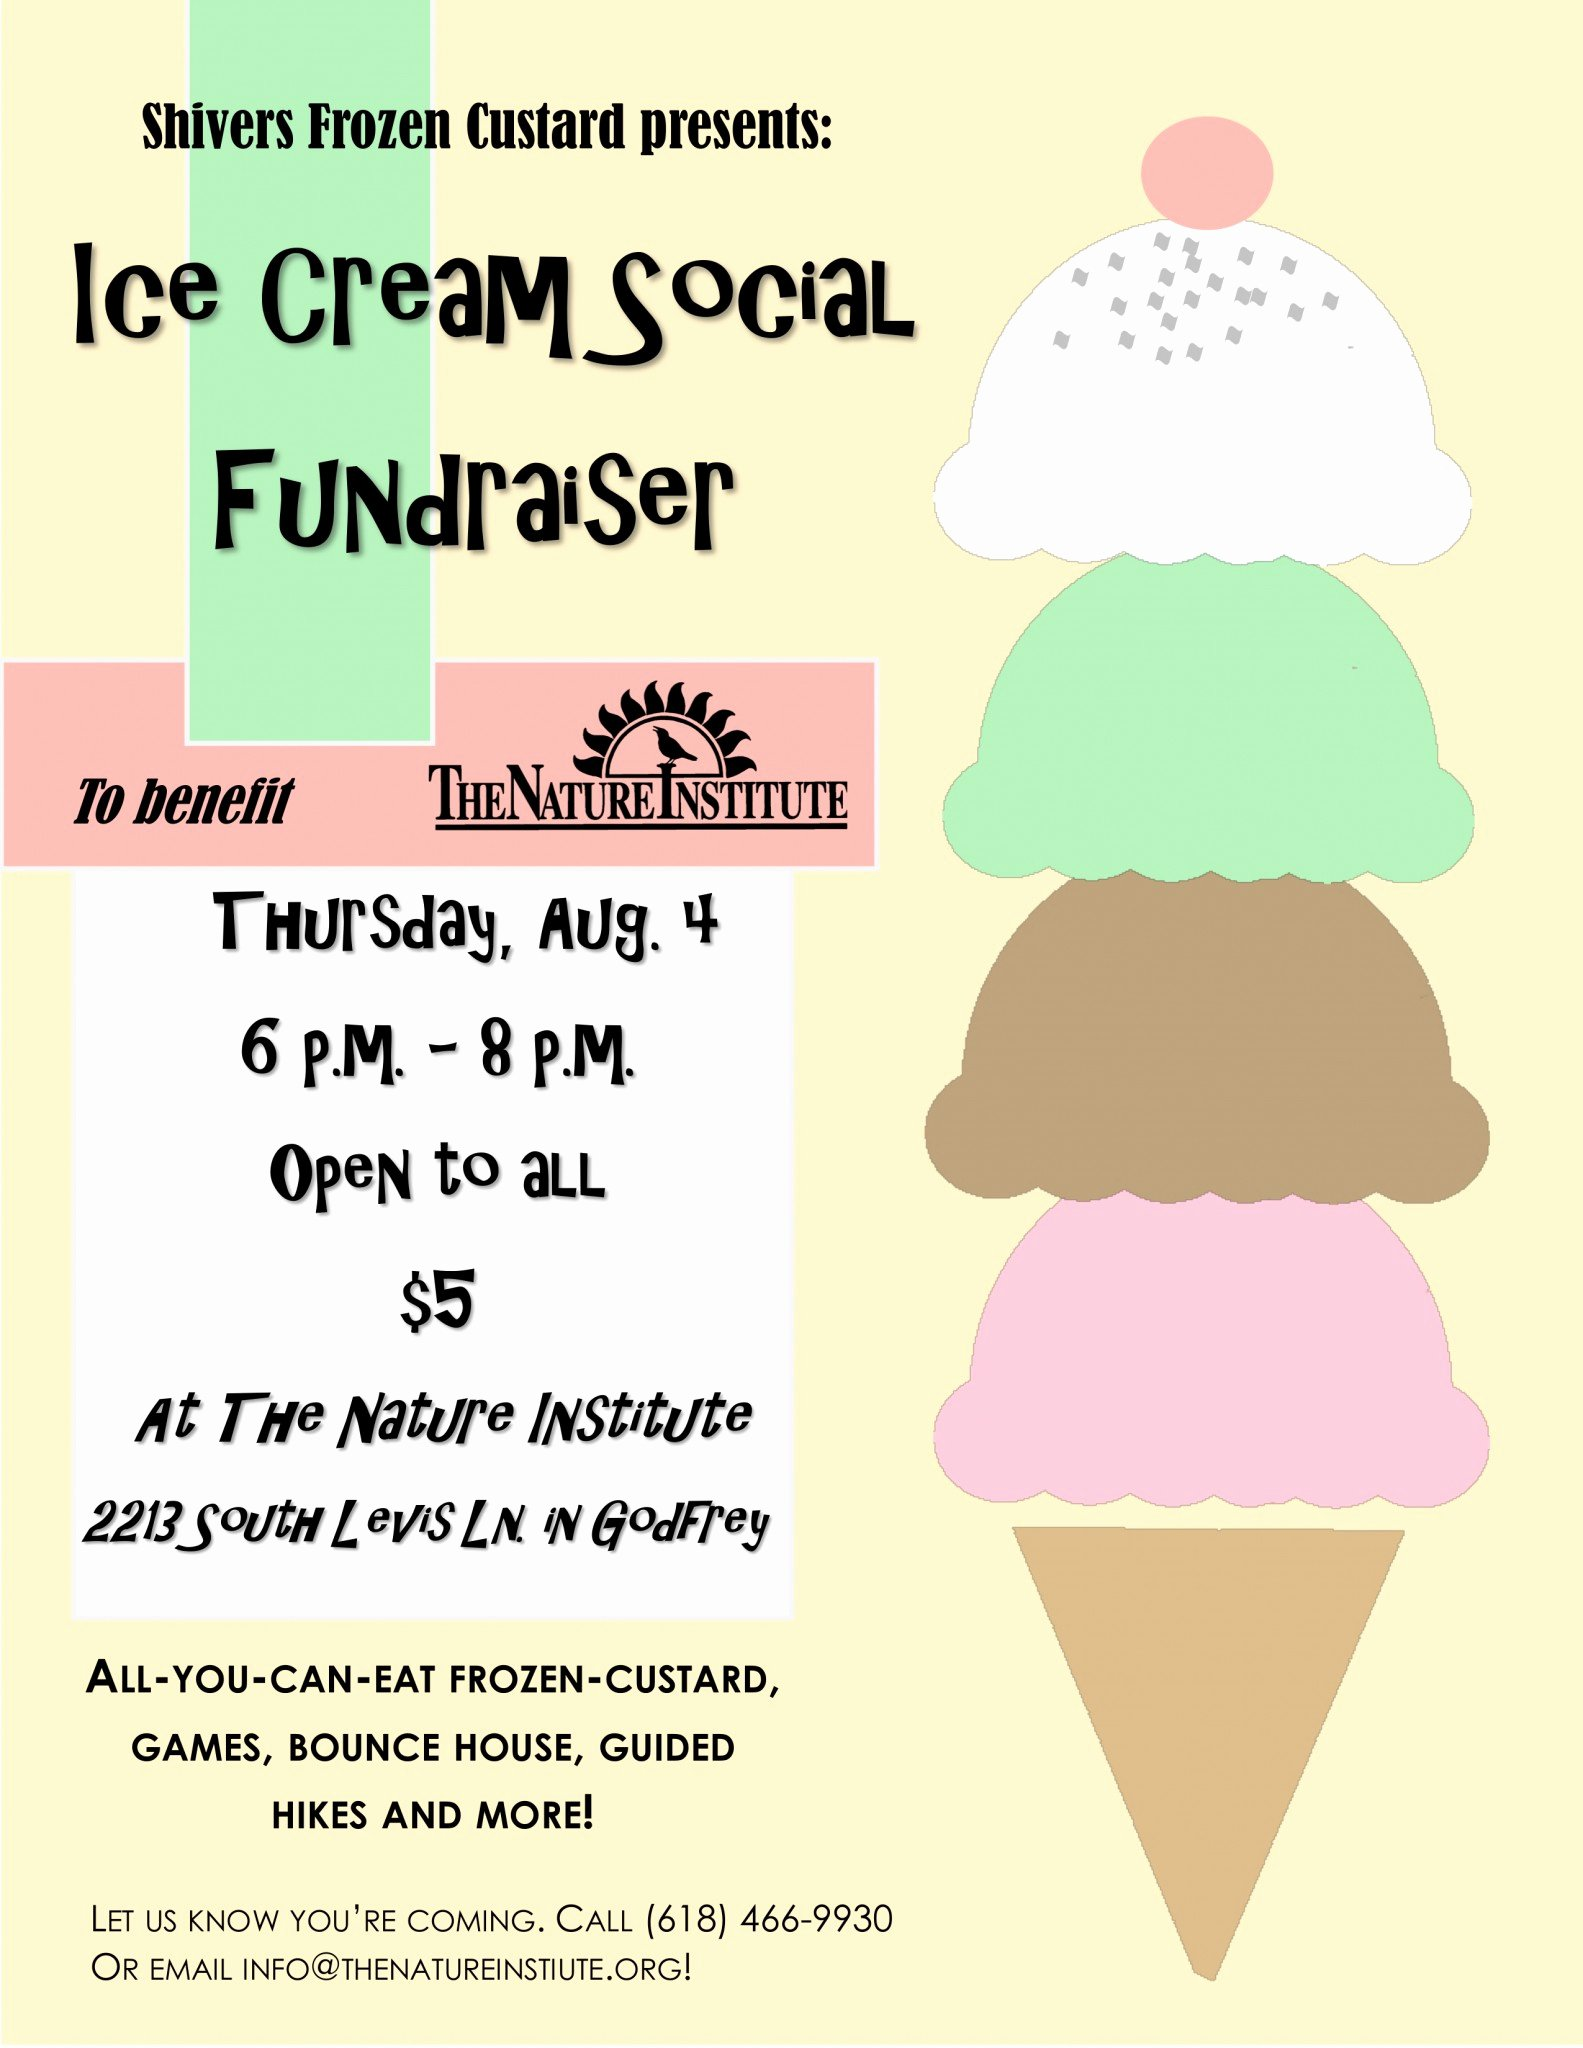 Ice Cream social Flyer Best Of the Nature Institute Shivers Frozen Custard Presents Tni Ice Cream social Fundraiser the